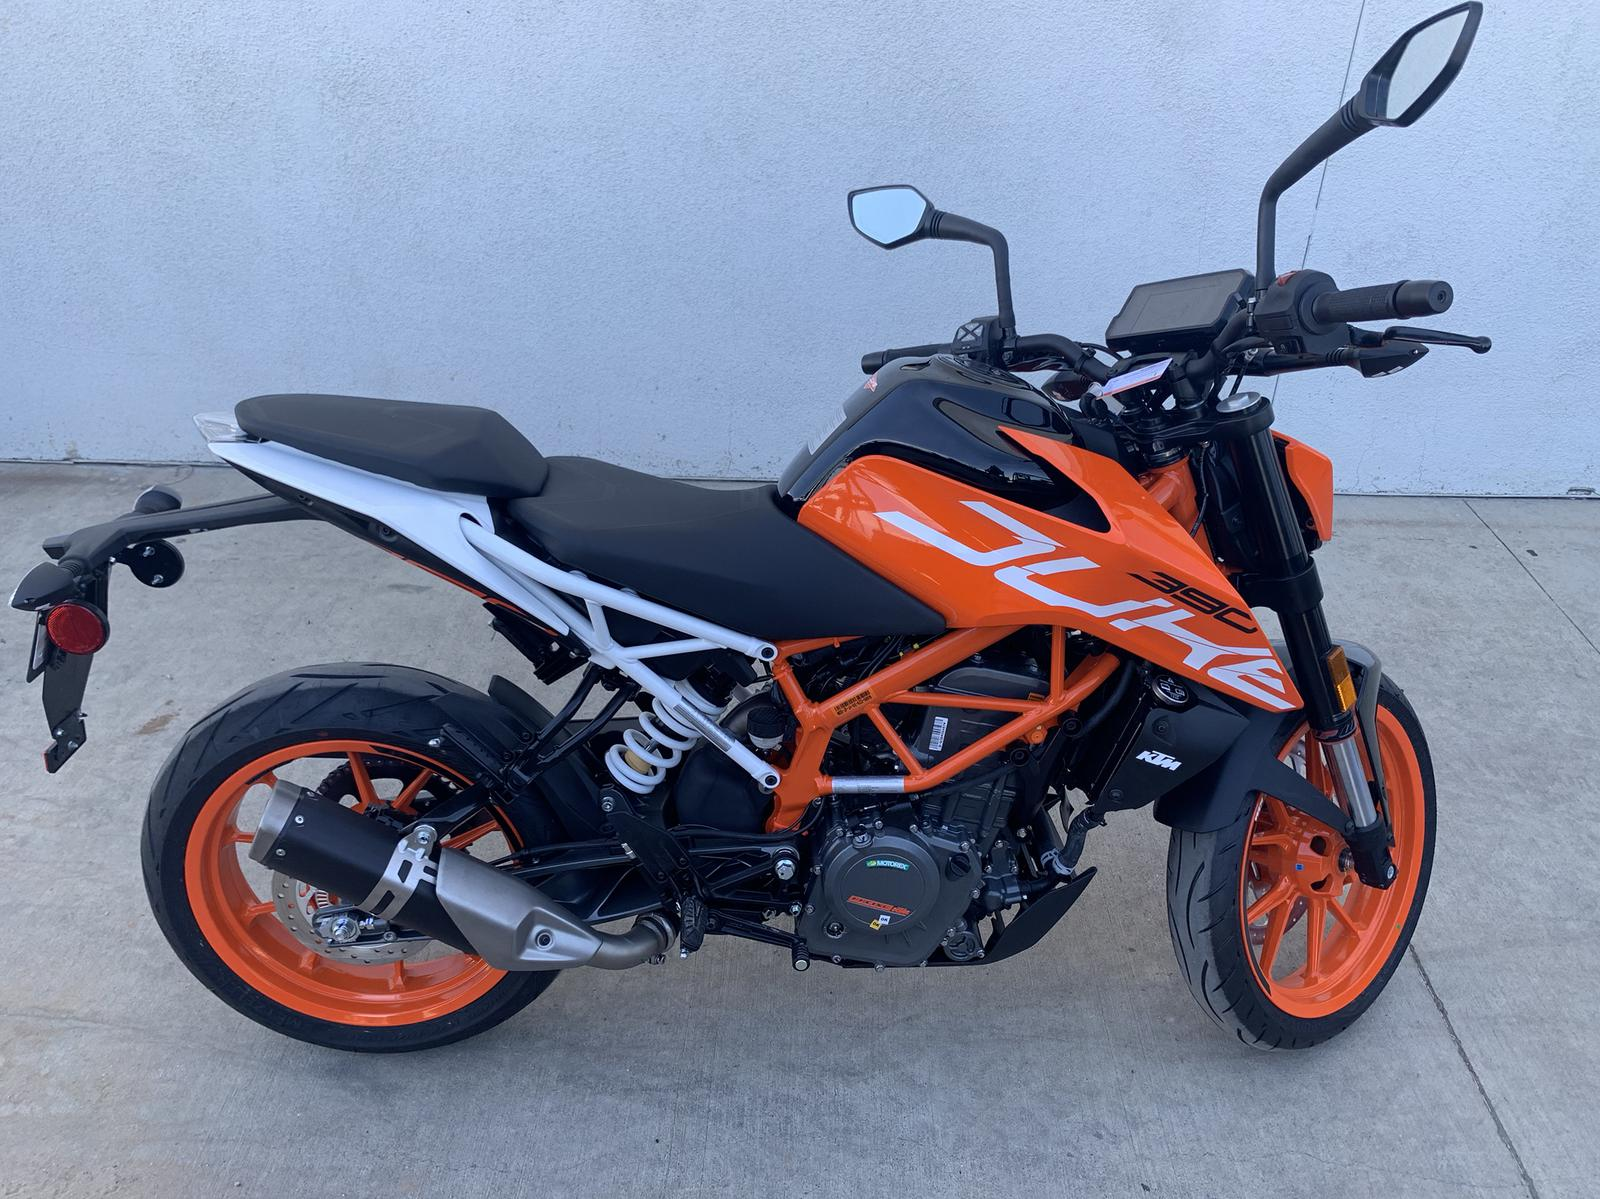 Inventory from KTM Valley Cycle & Motorsports Bakersfield